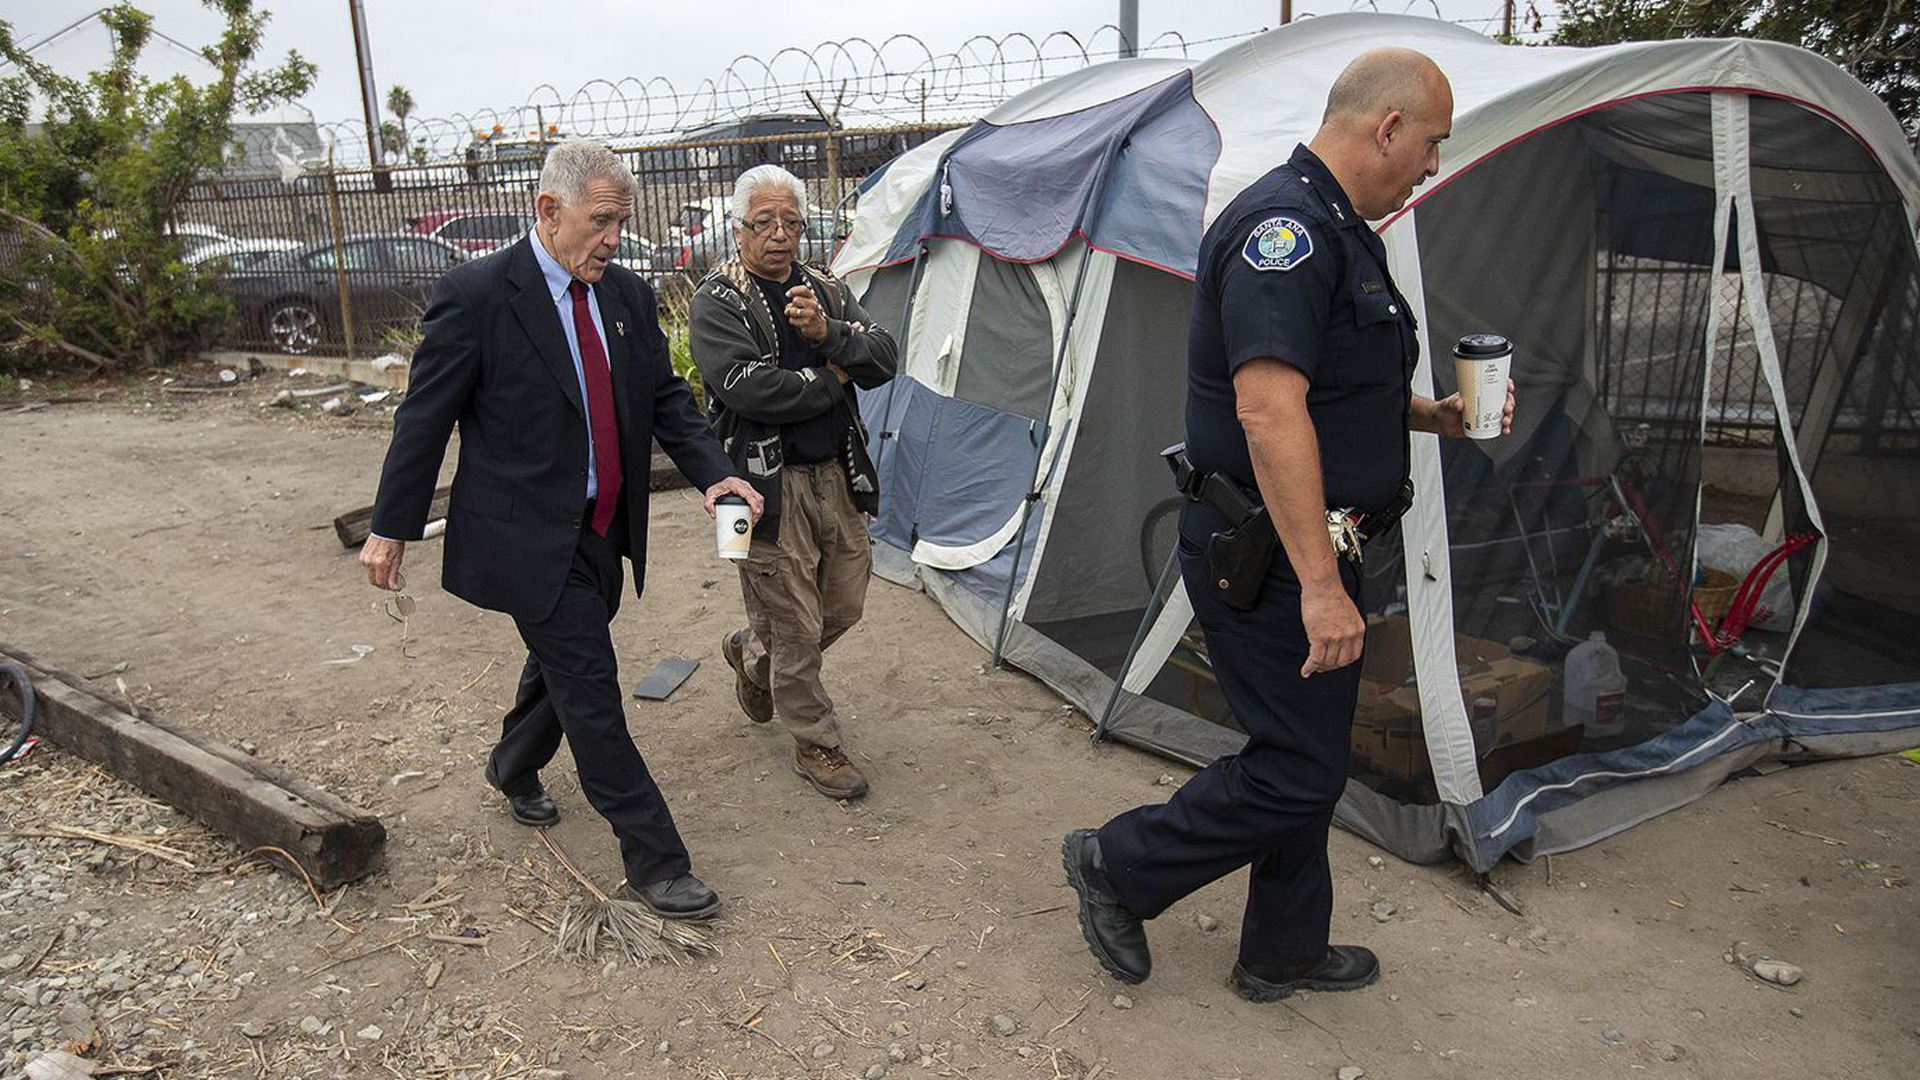 U.S. District Judge David Carter, left, homeless activist Lou Noble and Deputy Chief Ken Gominsky of the Santa Ana Police Department walk past a tent along railroad tracks near Main Street in Santa Ana on June 5, 2018. (Credit: Scott Smeltzer / Daily Pilot)